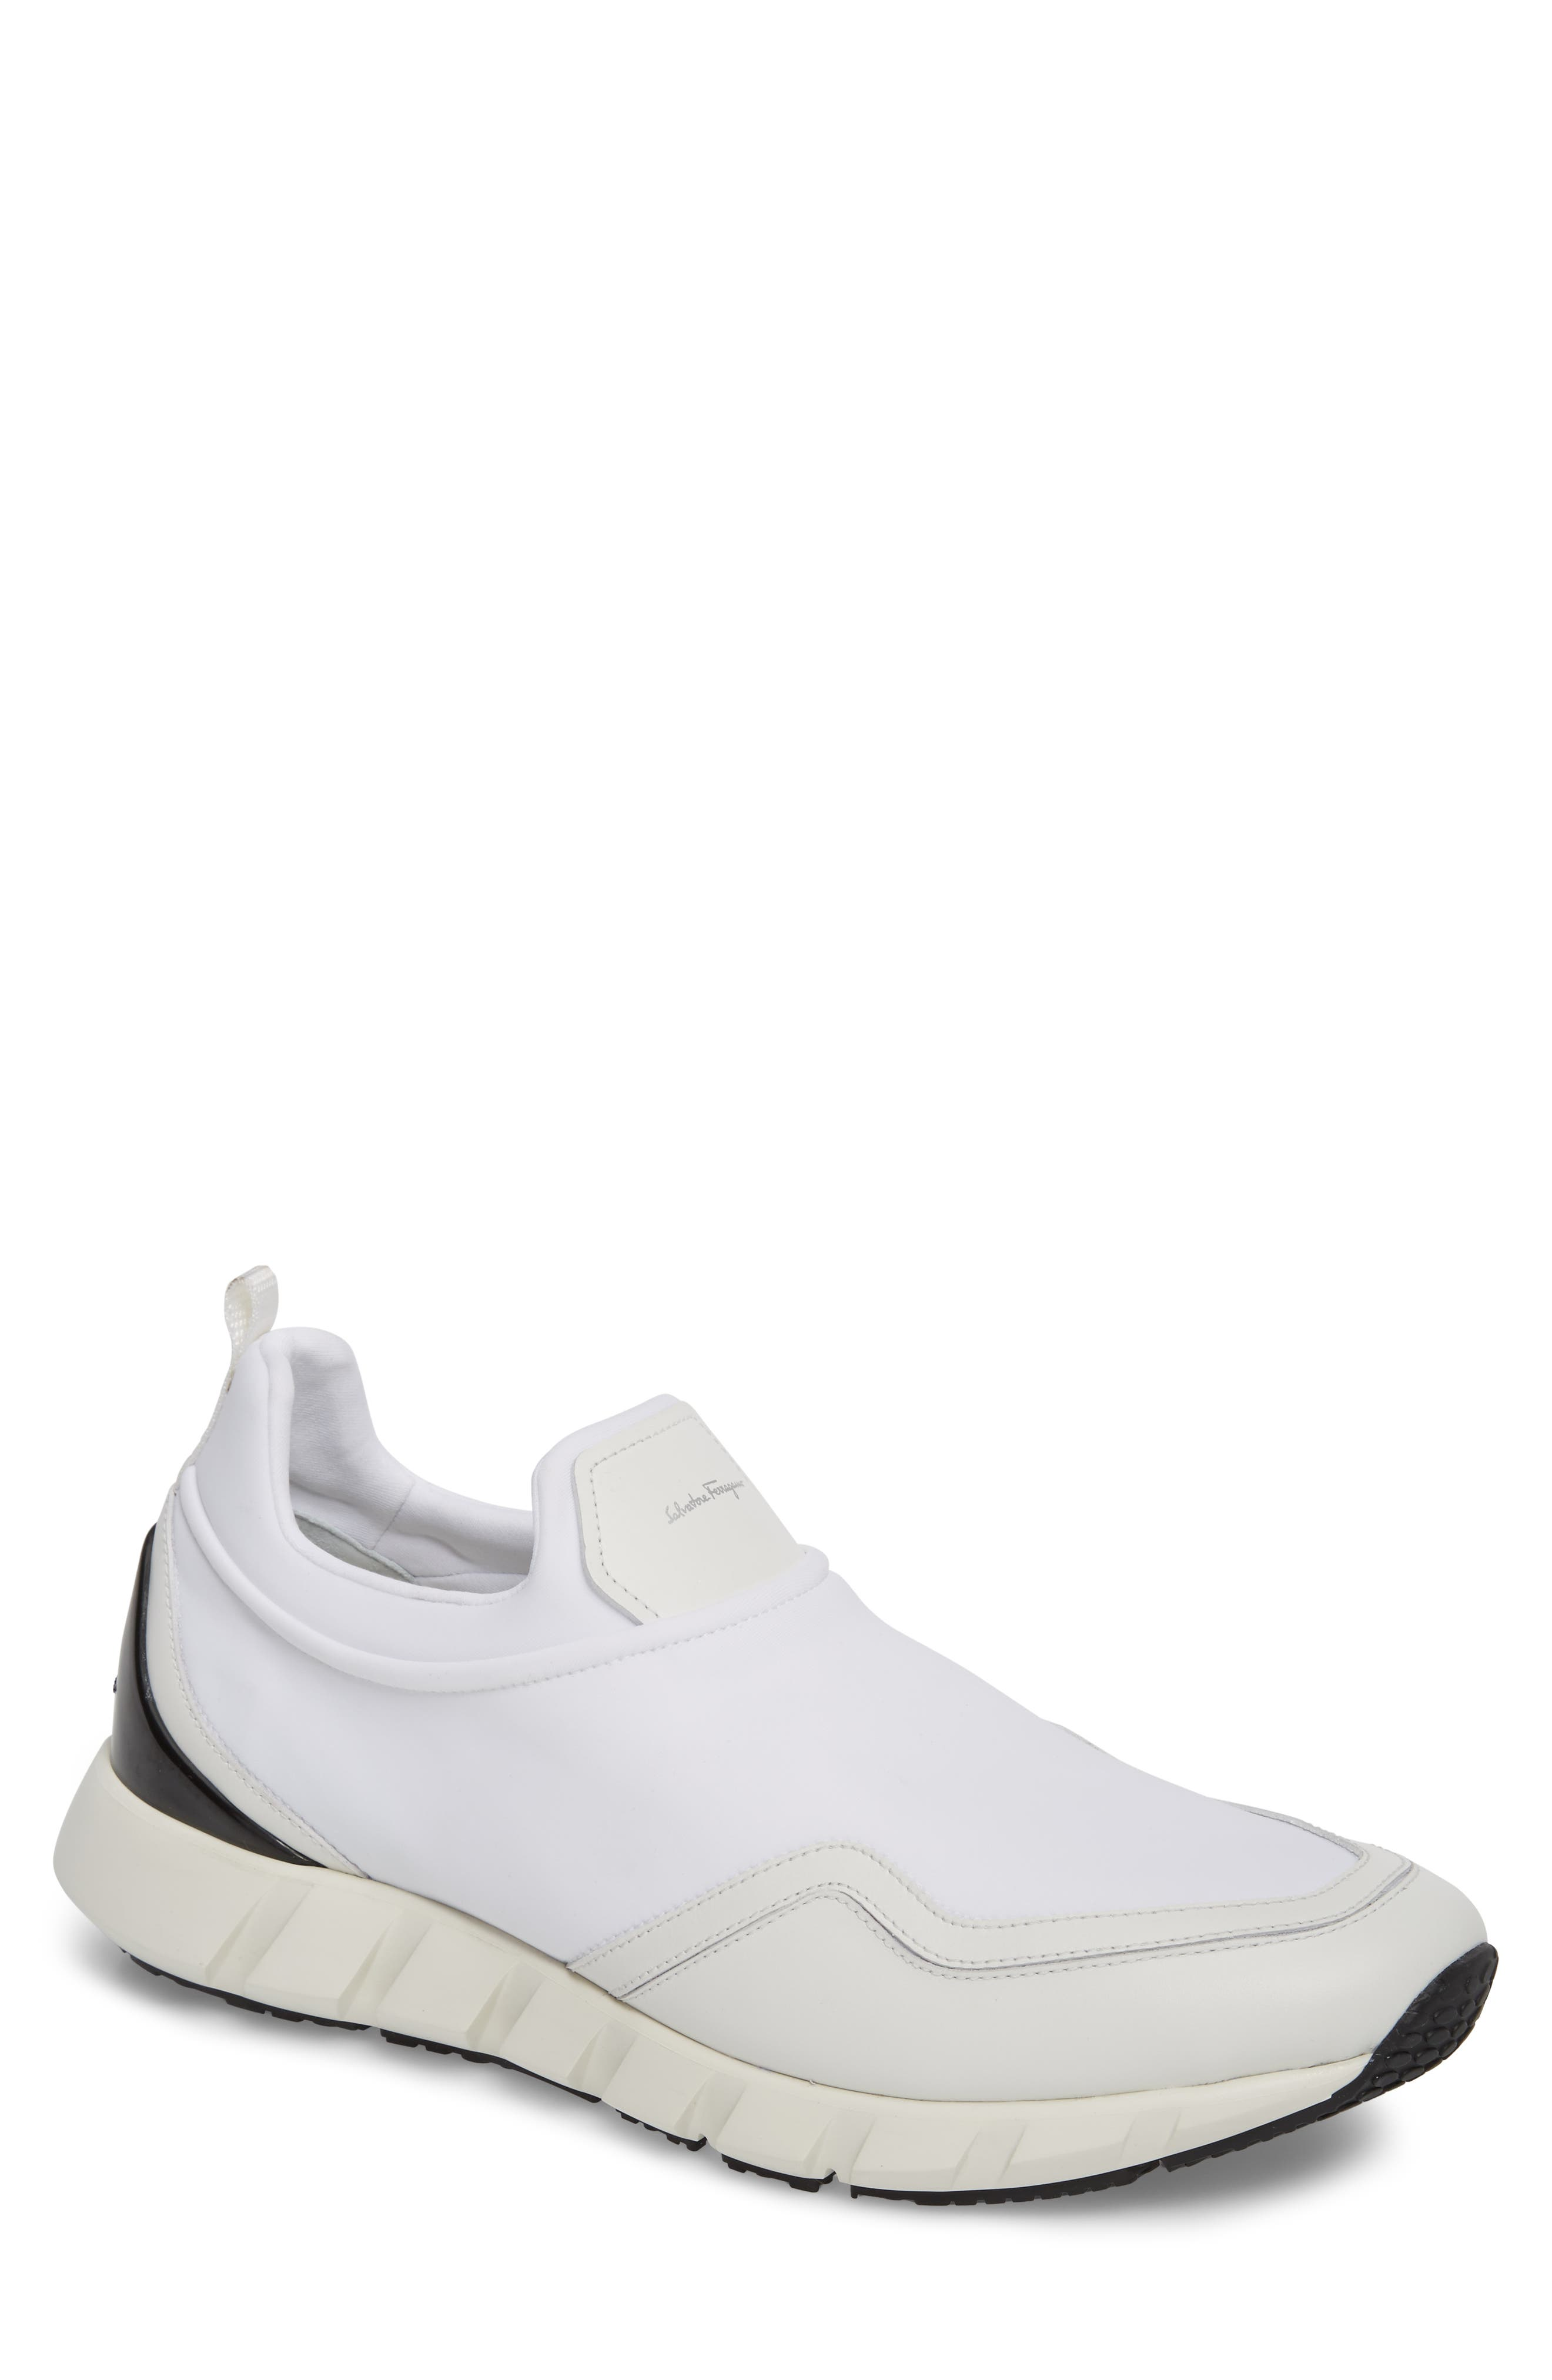 Columbia Slip-On,                         Main,                         color, Bianco